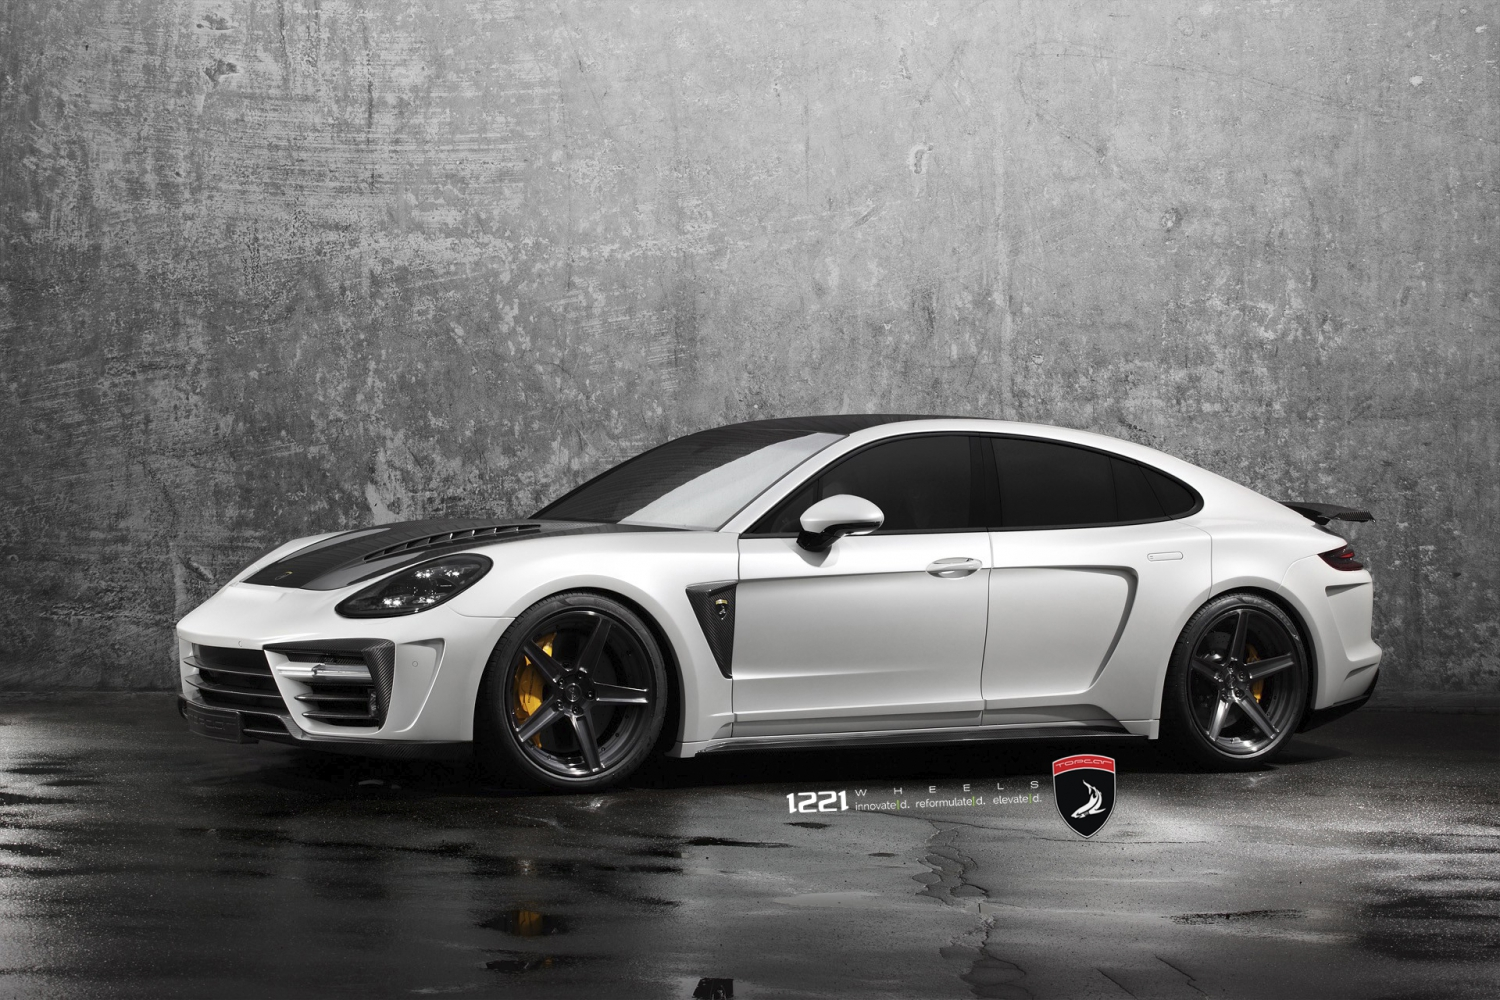 Porsche Panamera Topcar Widebody forged concave wheels